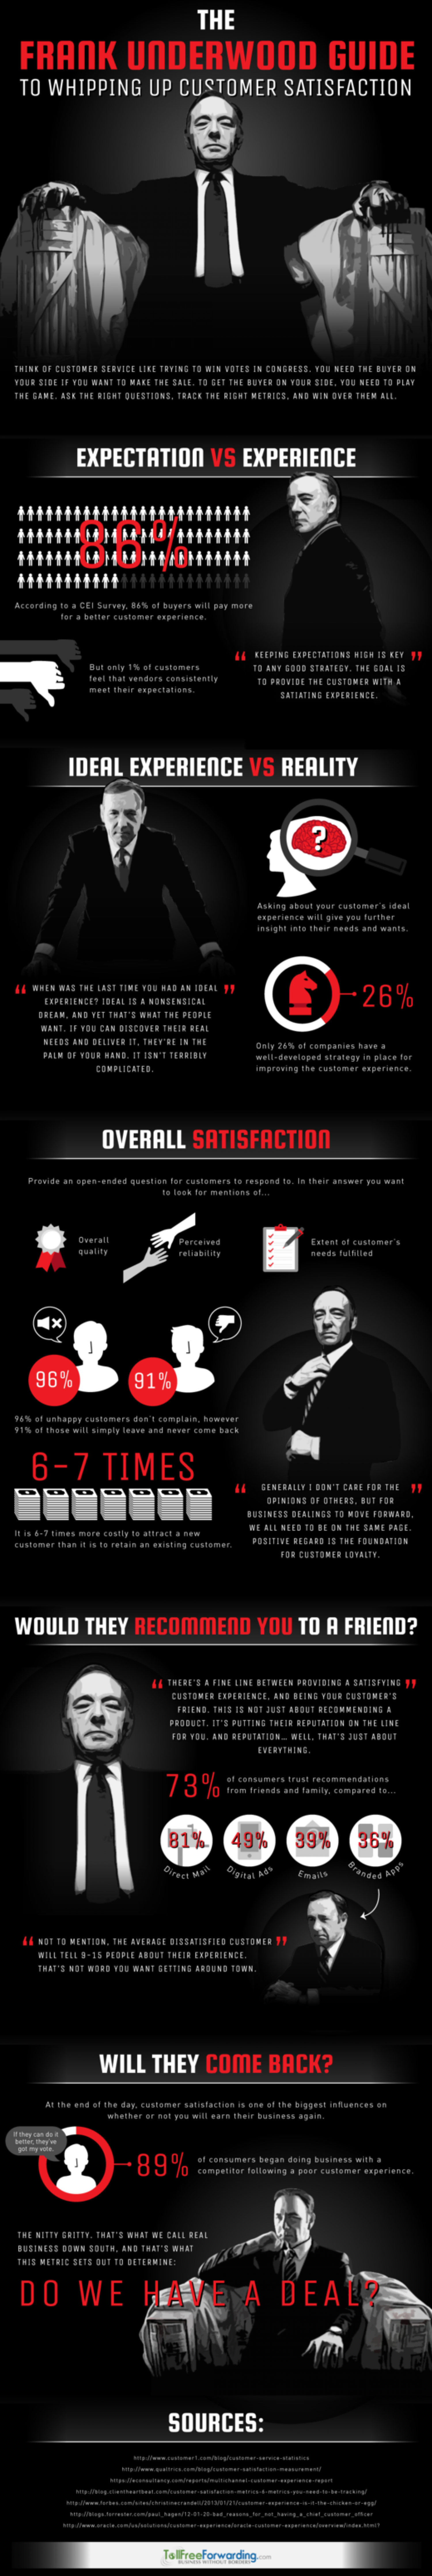 The Frank Underwood's Guide to Whipping Up Customer Satisfaction Infographic